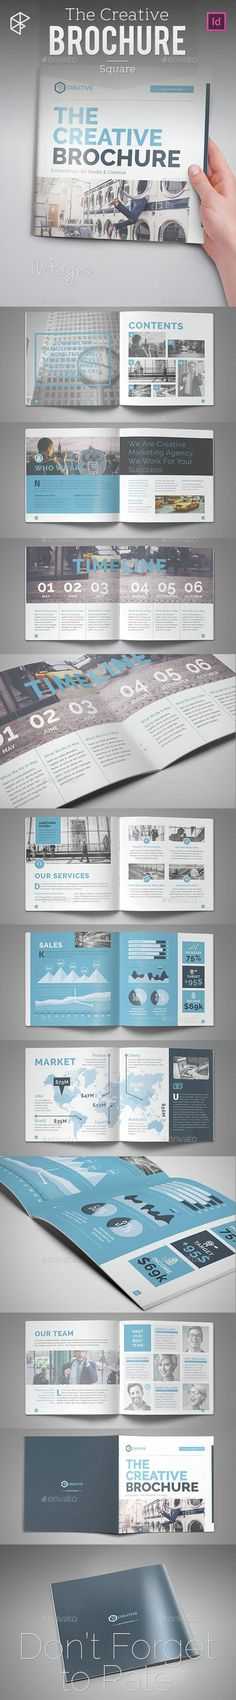 The Creative Square Brochure Template InDesign INDD. Download here: http://graphicriver.net/item/the-creative-brochure-square/15172109?ref=ksioks